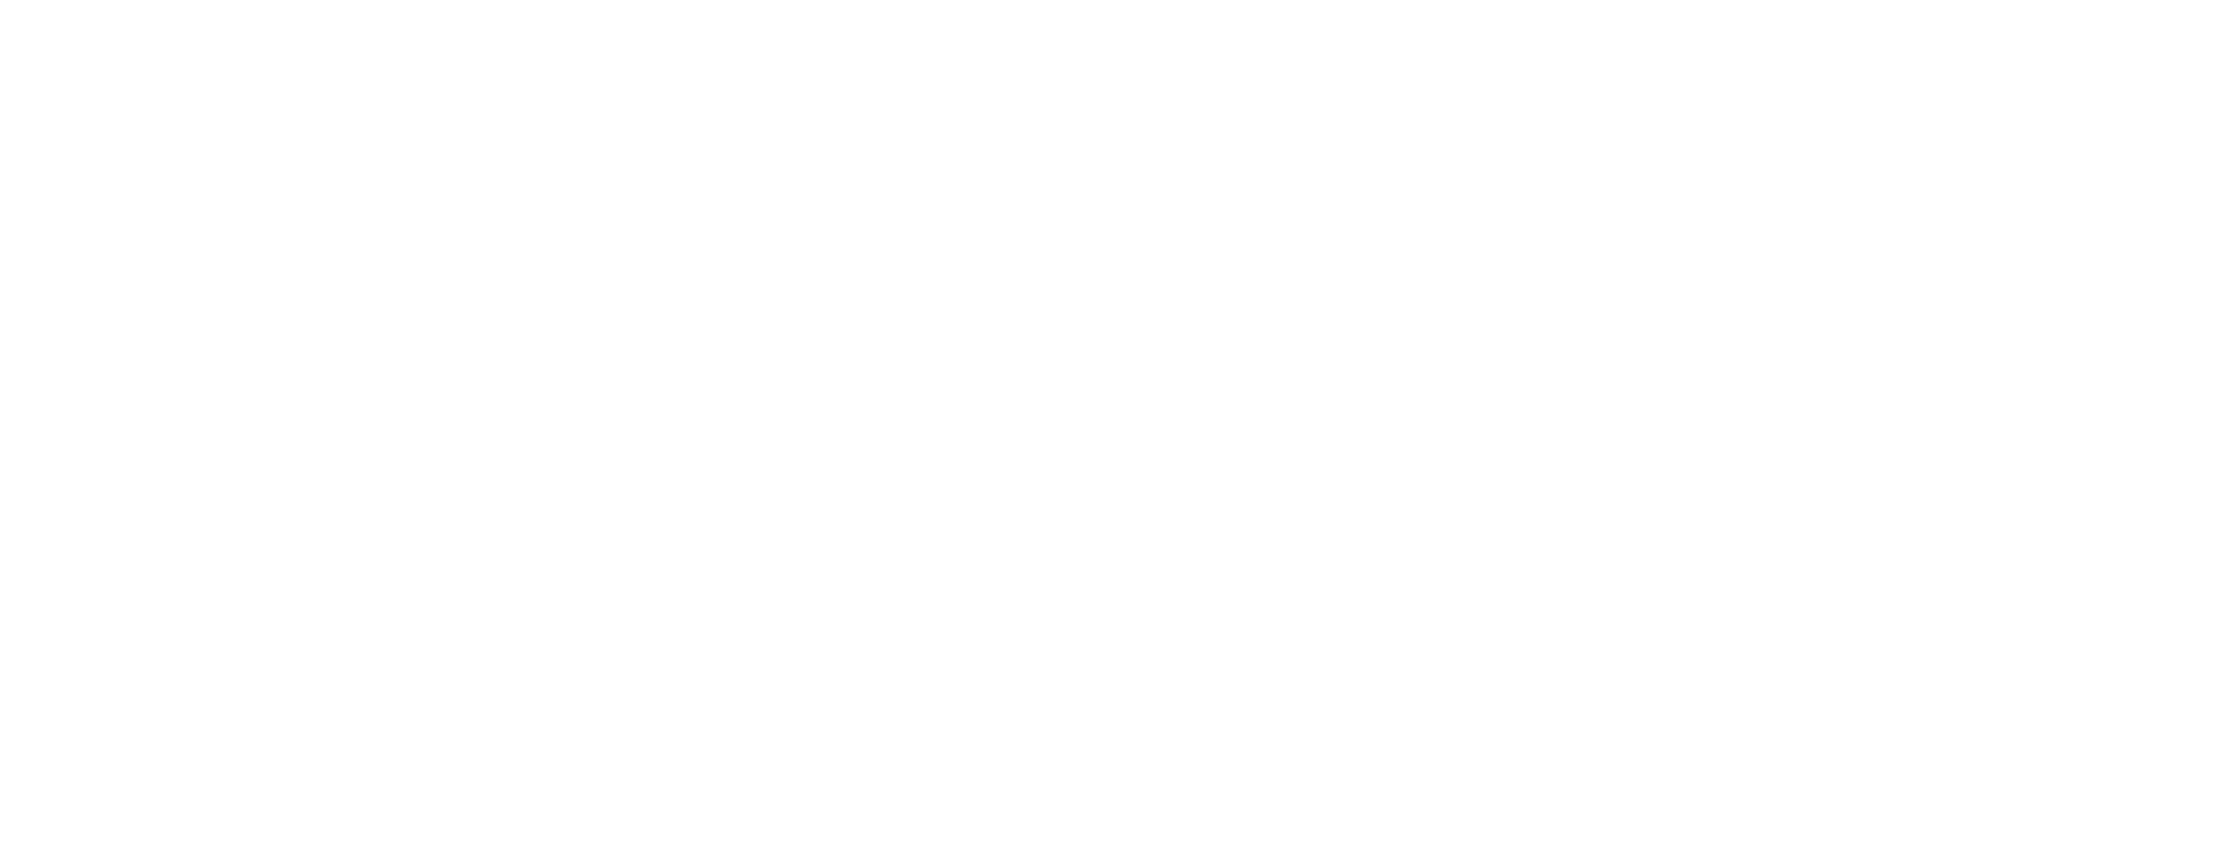 Scouts 17th West Lothian